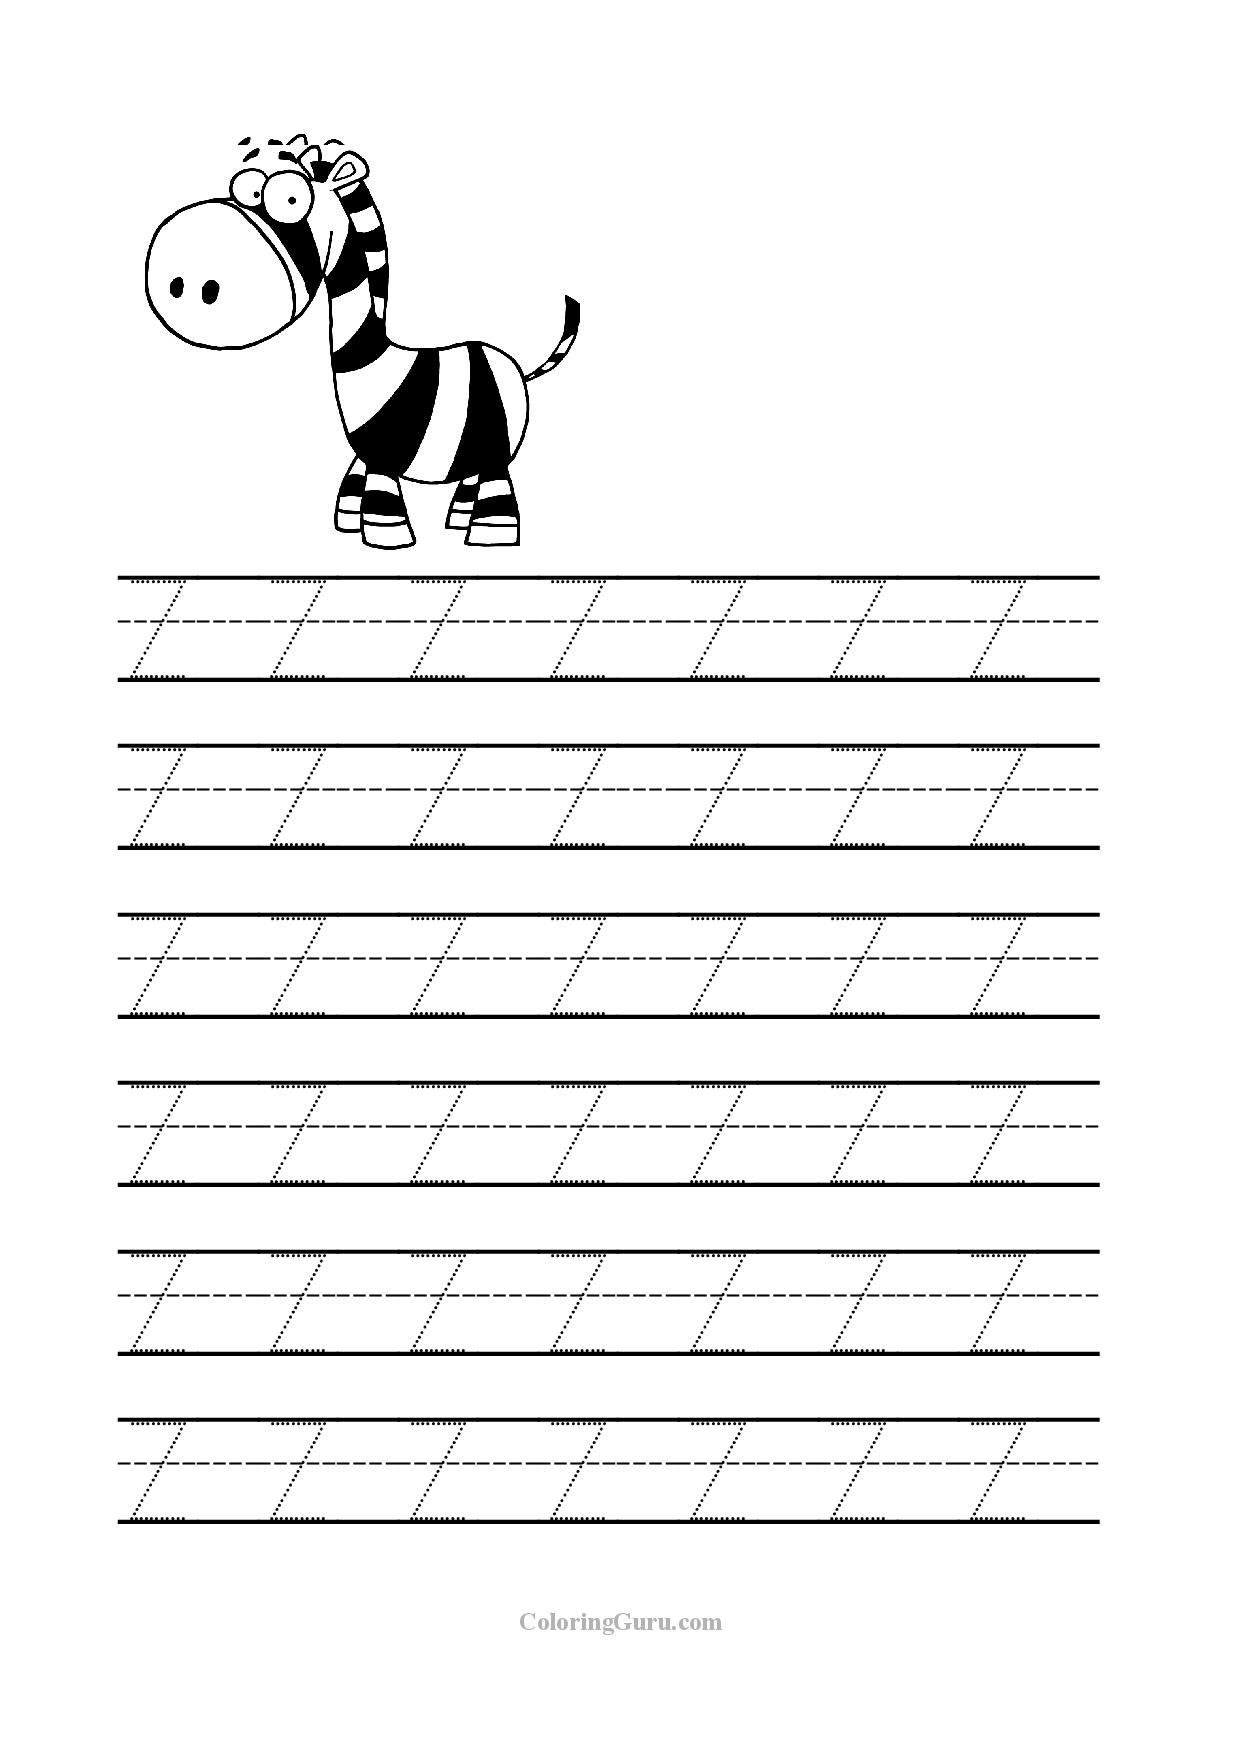 Free Printable Tracing Letter Z Worksheets For Preschool within Z Letter Tracing